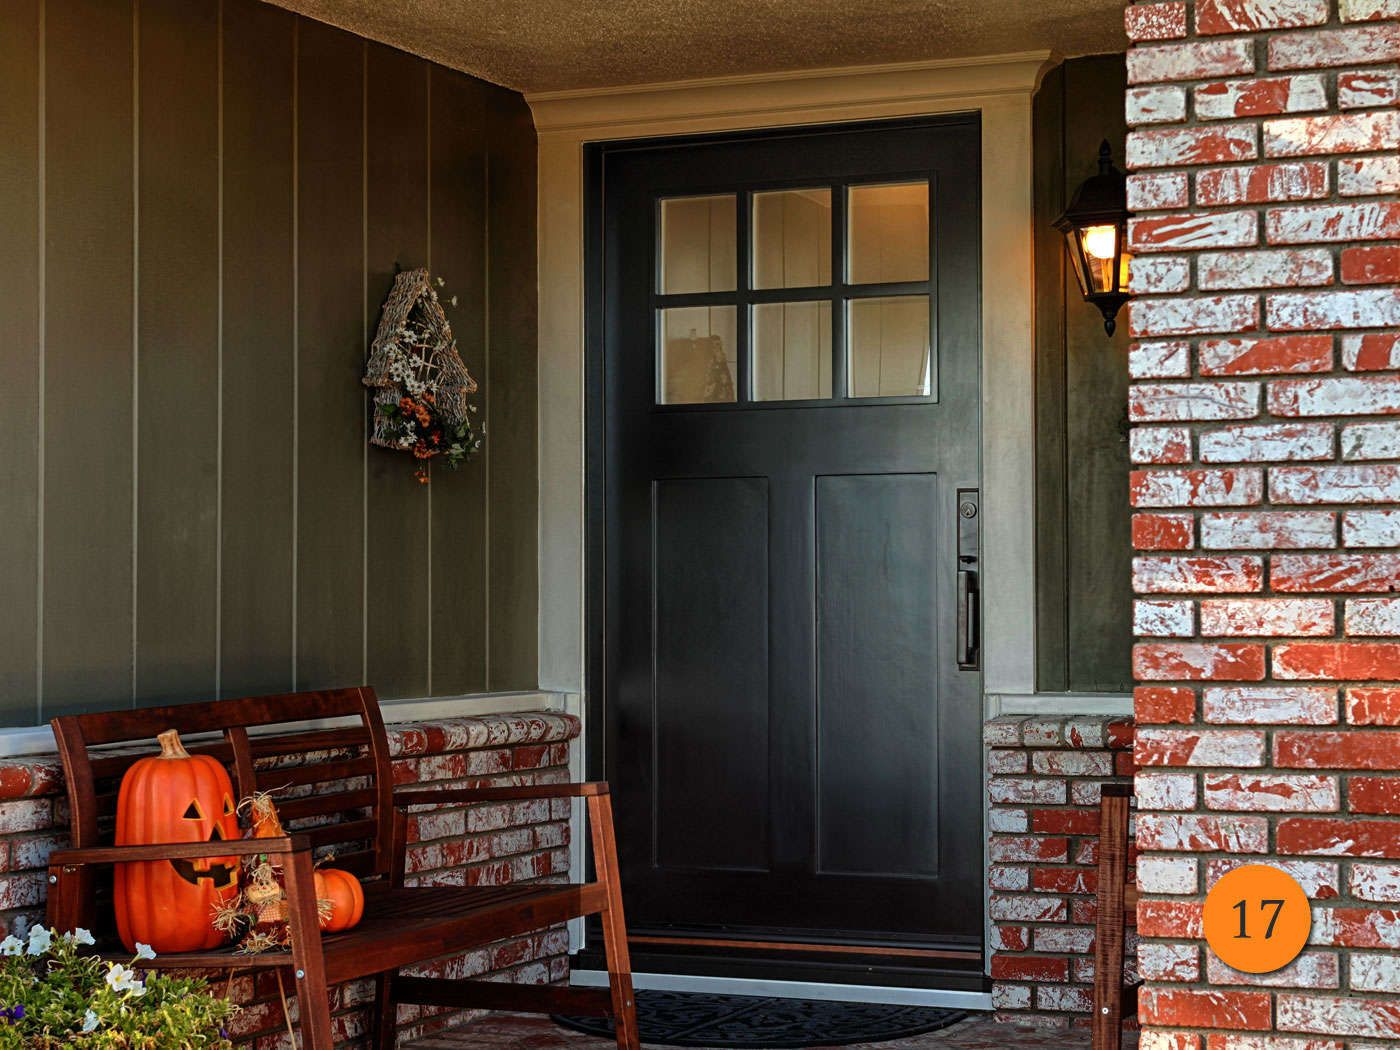 Charmant Many California Homeowners Have A 42 Inch Entry Door Or 5 Foot Wide  Entrances. 42u2033 X 80u2033 Fiberglass Entry Doors Are Becoming Increasingly  Popular.